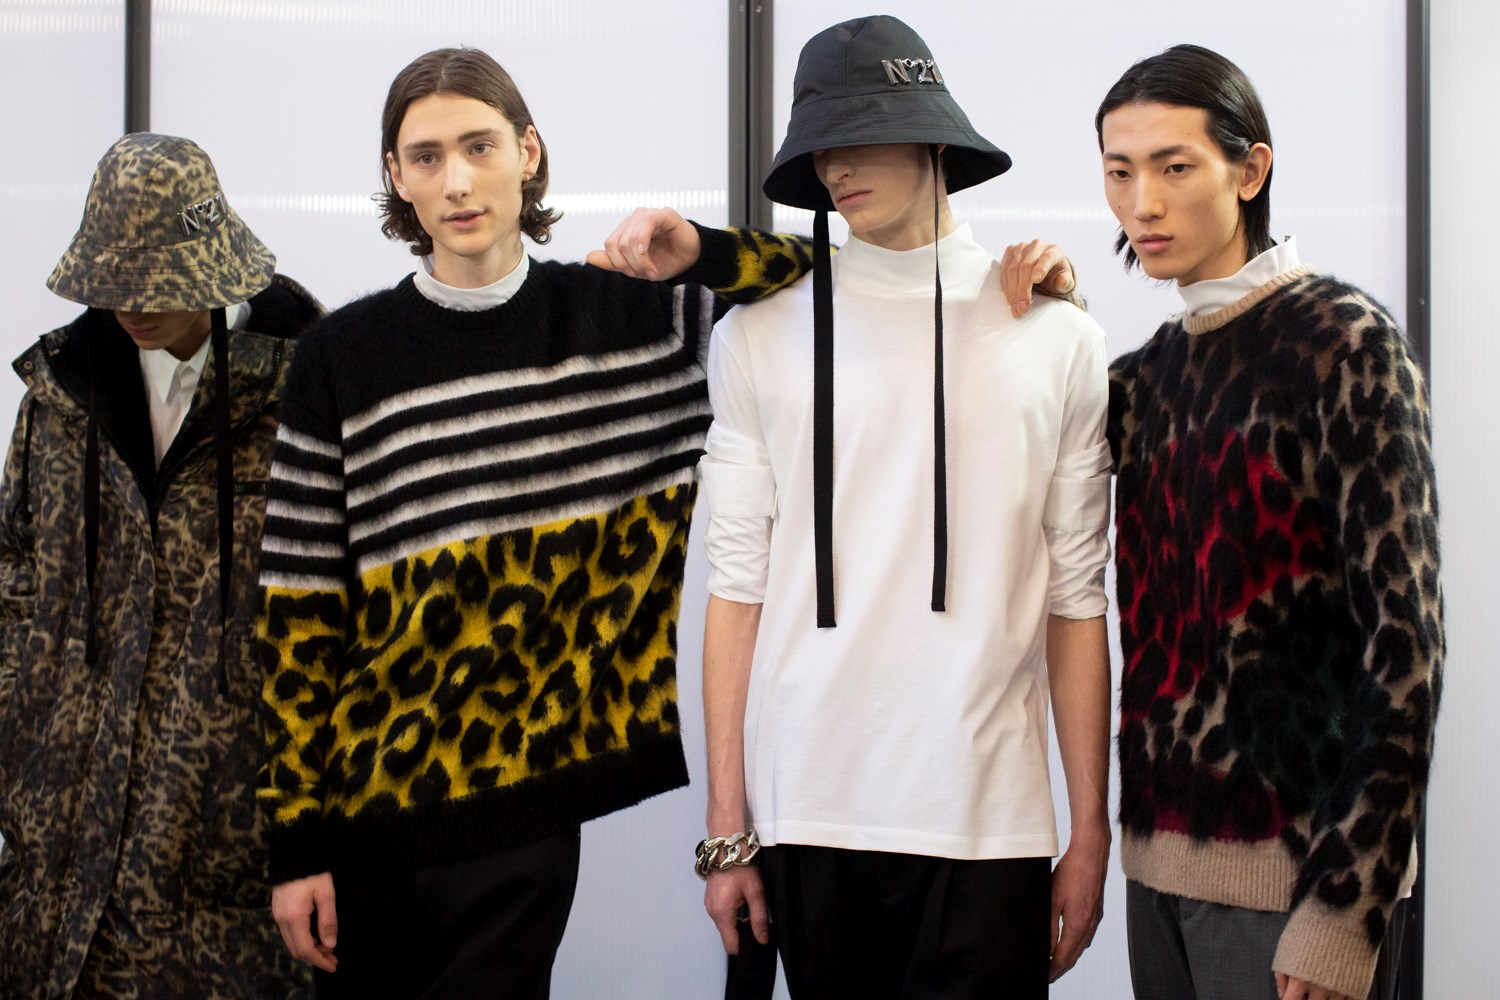 N 21 Fall 2020 Men's Fashion Show Photos